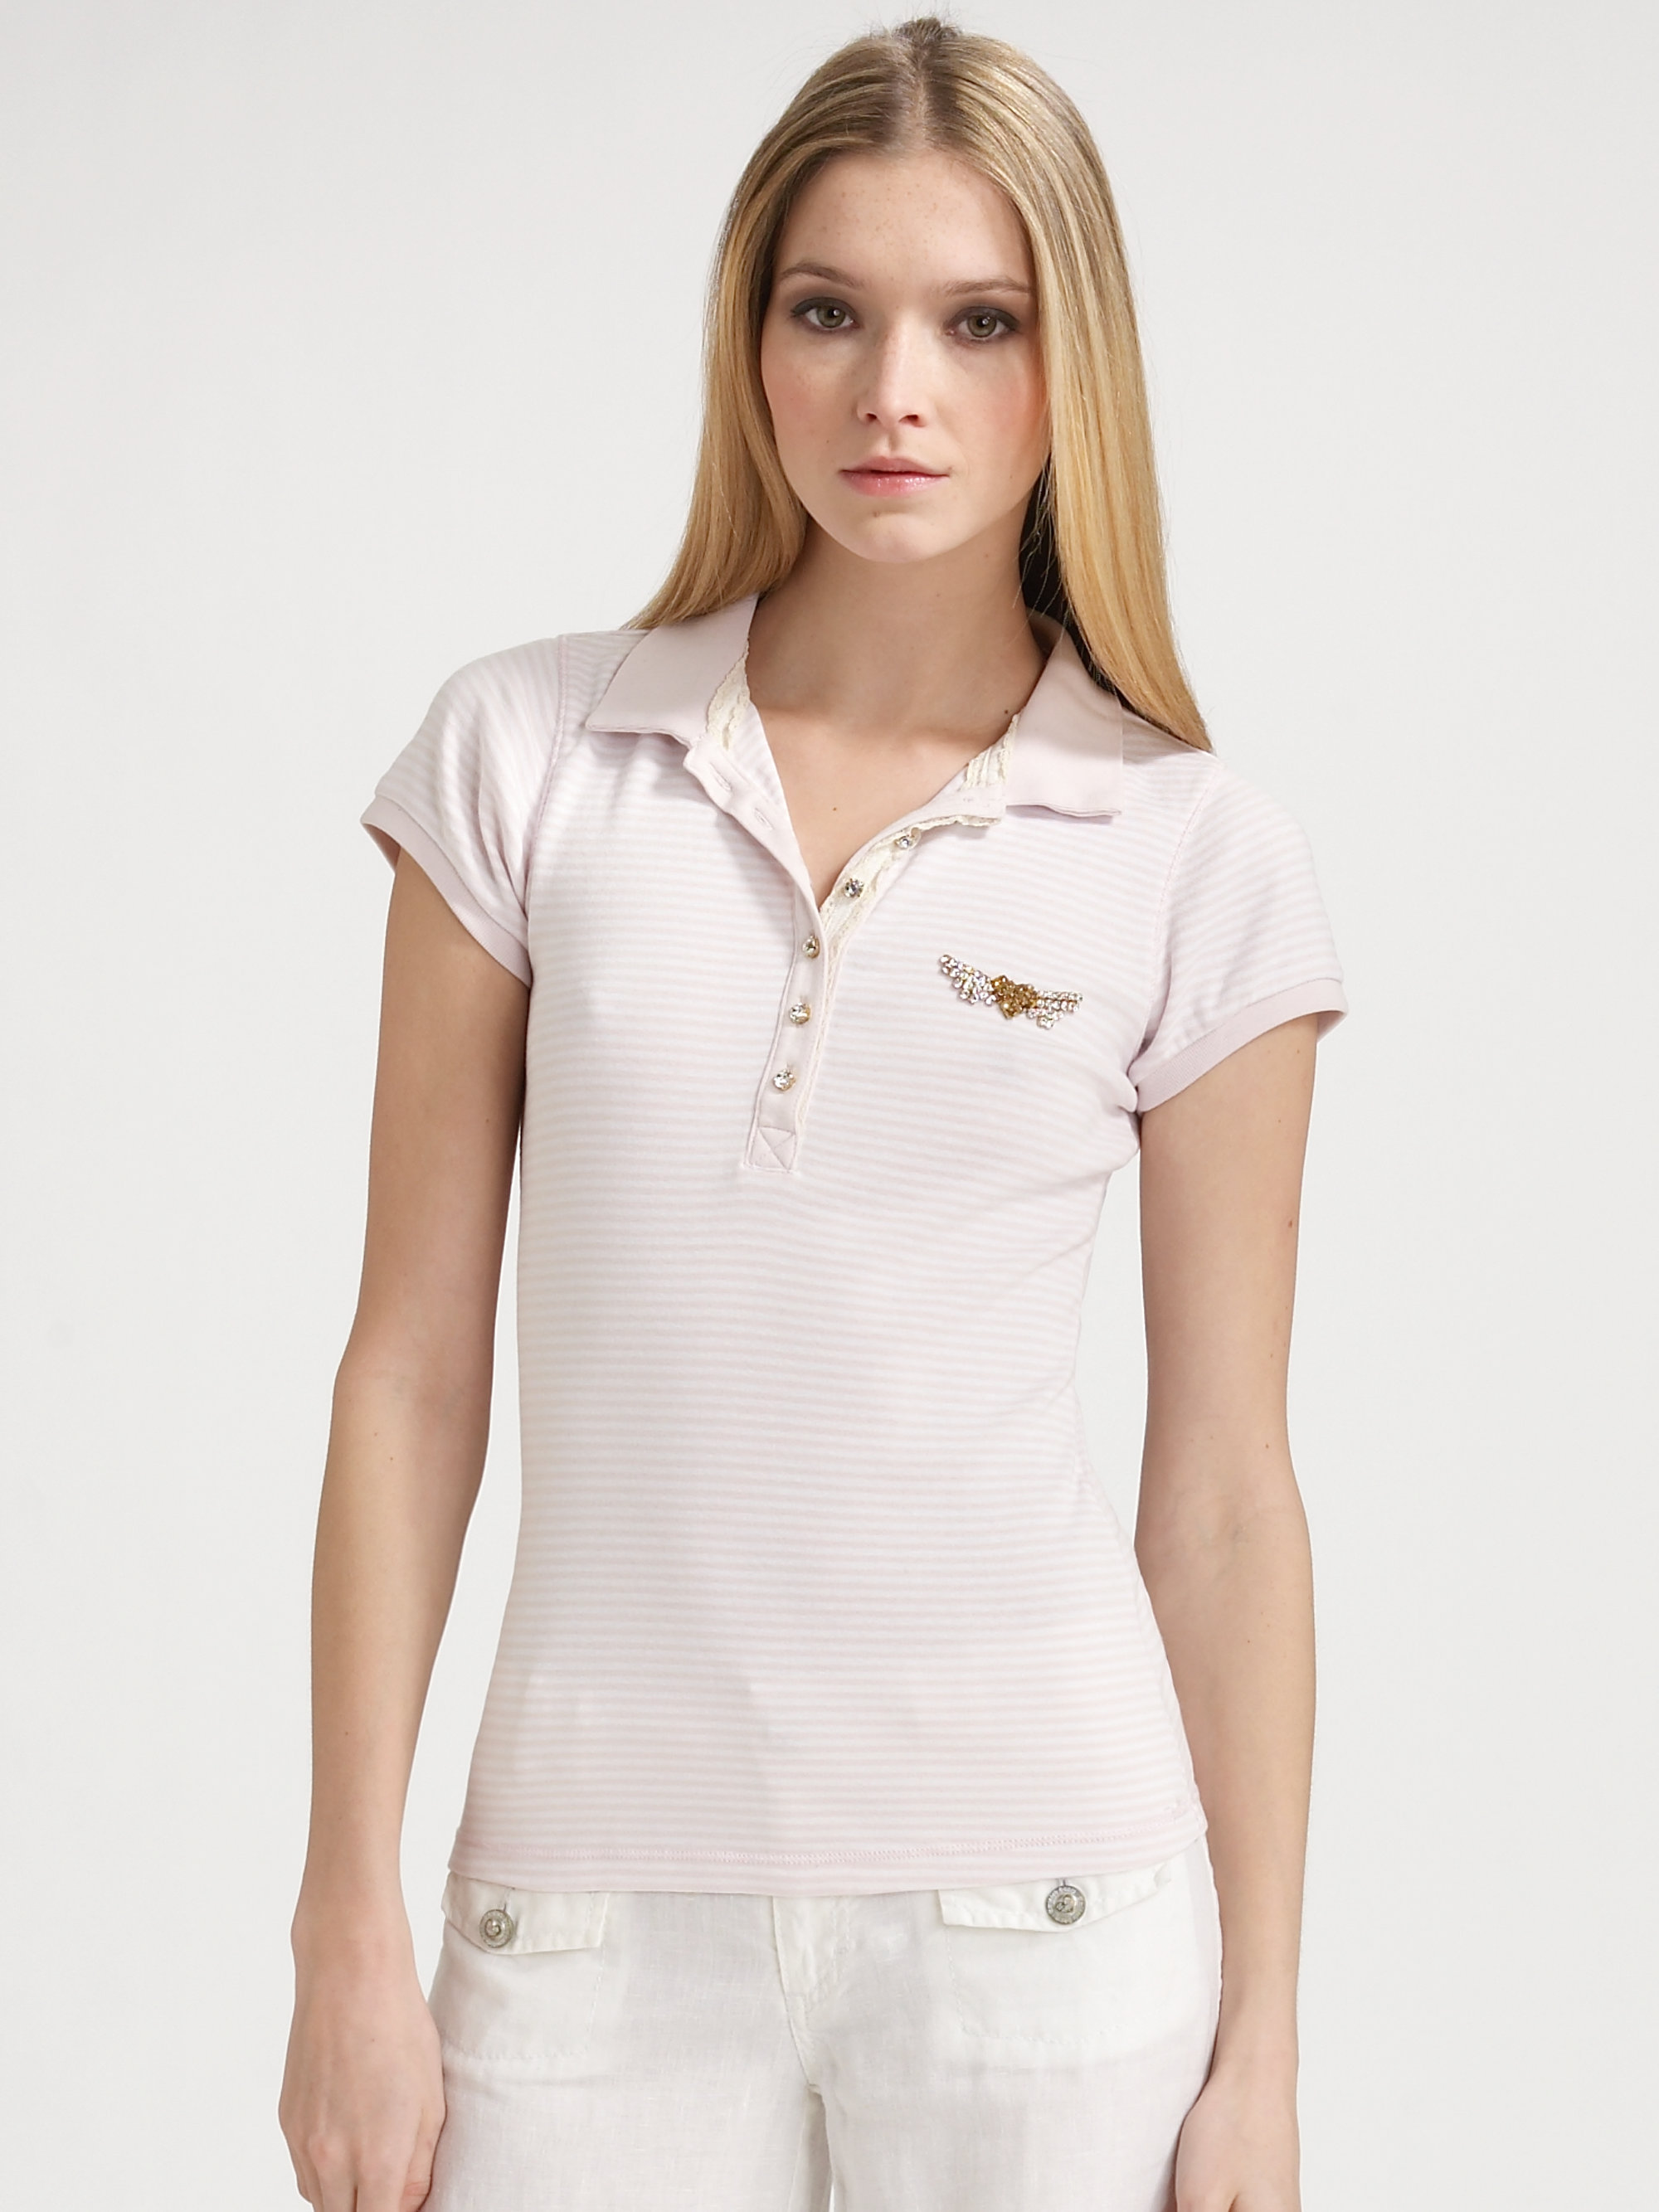 polo single girls Buy polo neck t-shirts for men online in india the original brand of polo neck t-shirts for men and women, us polo assn is a company controlled by the uspa.